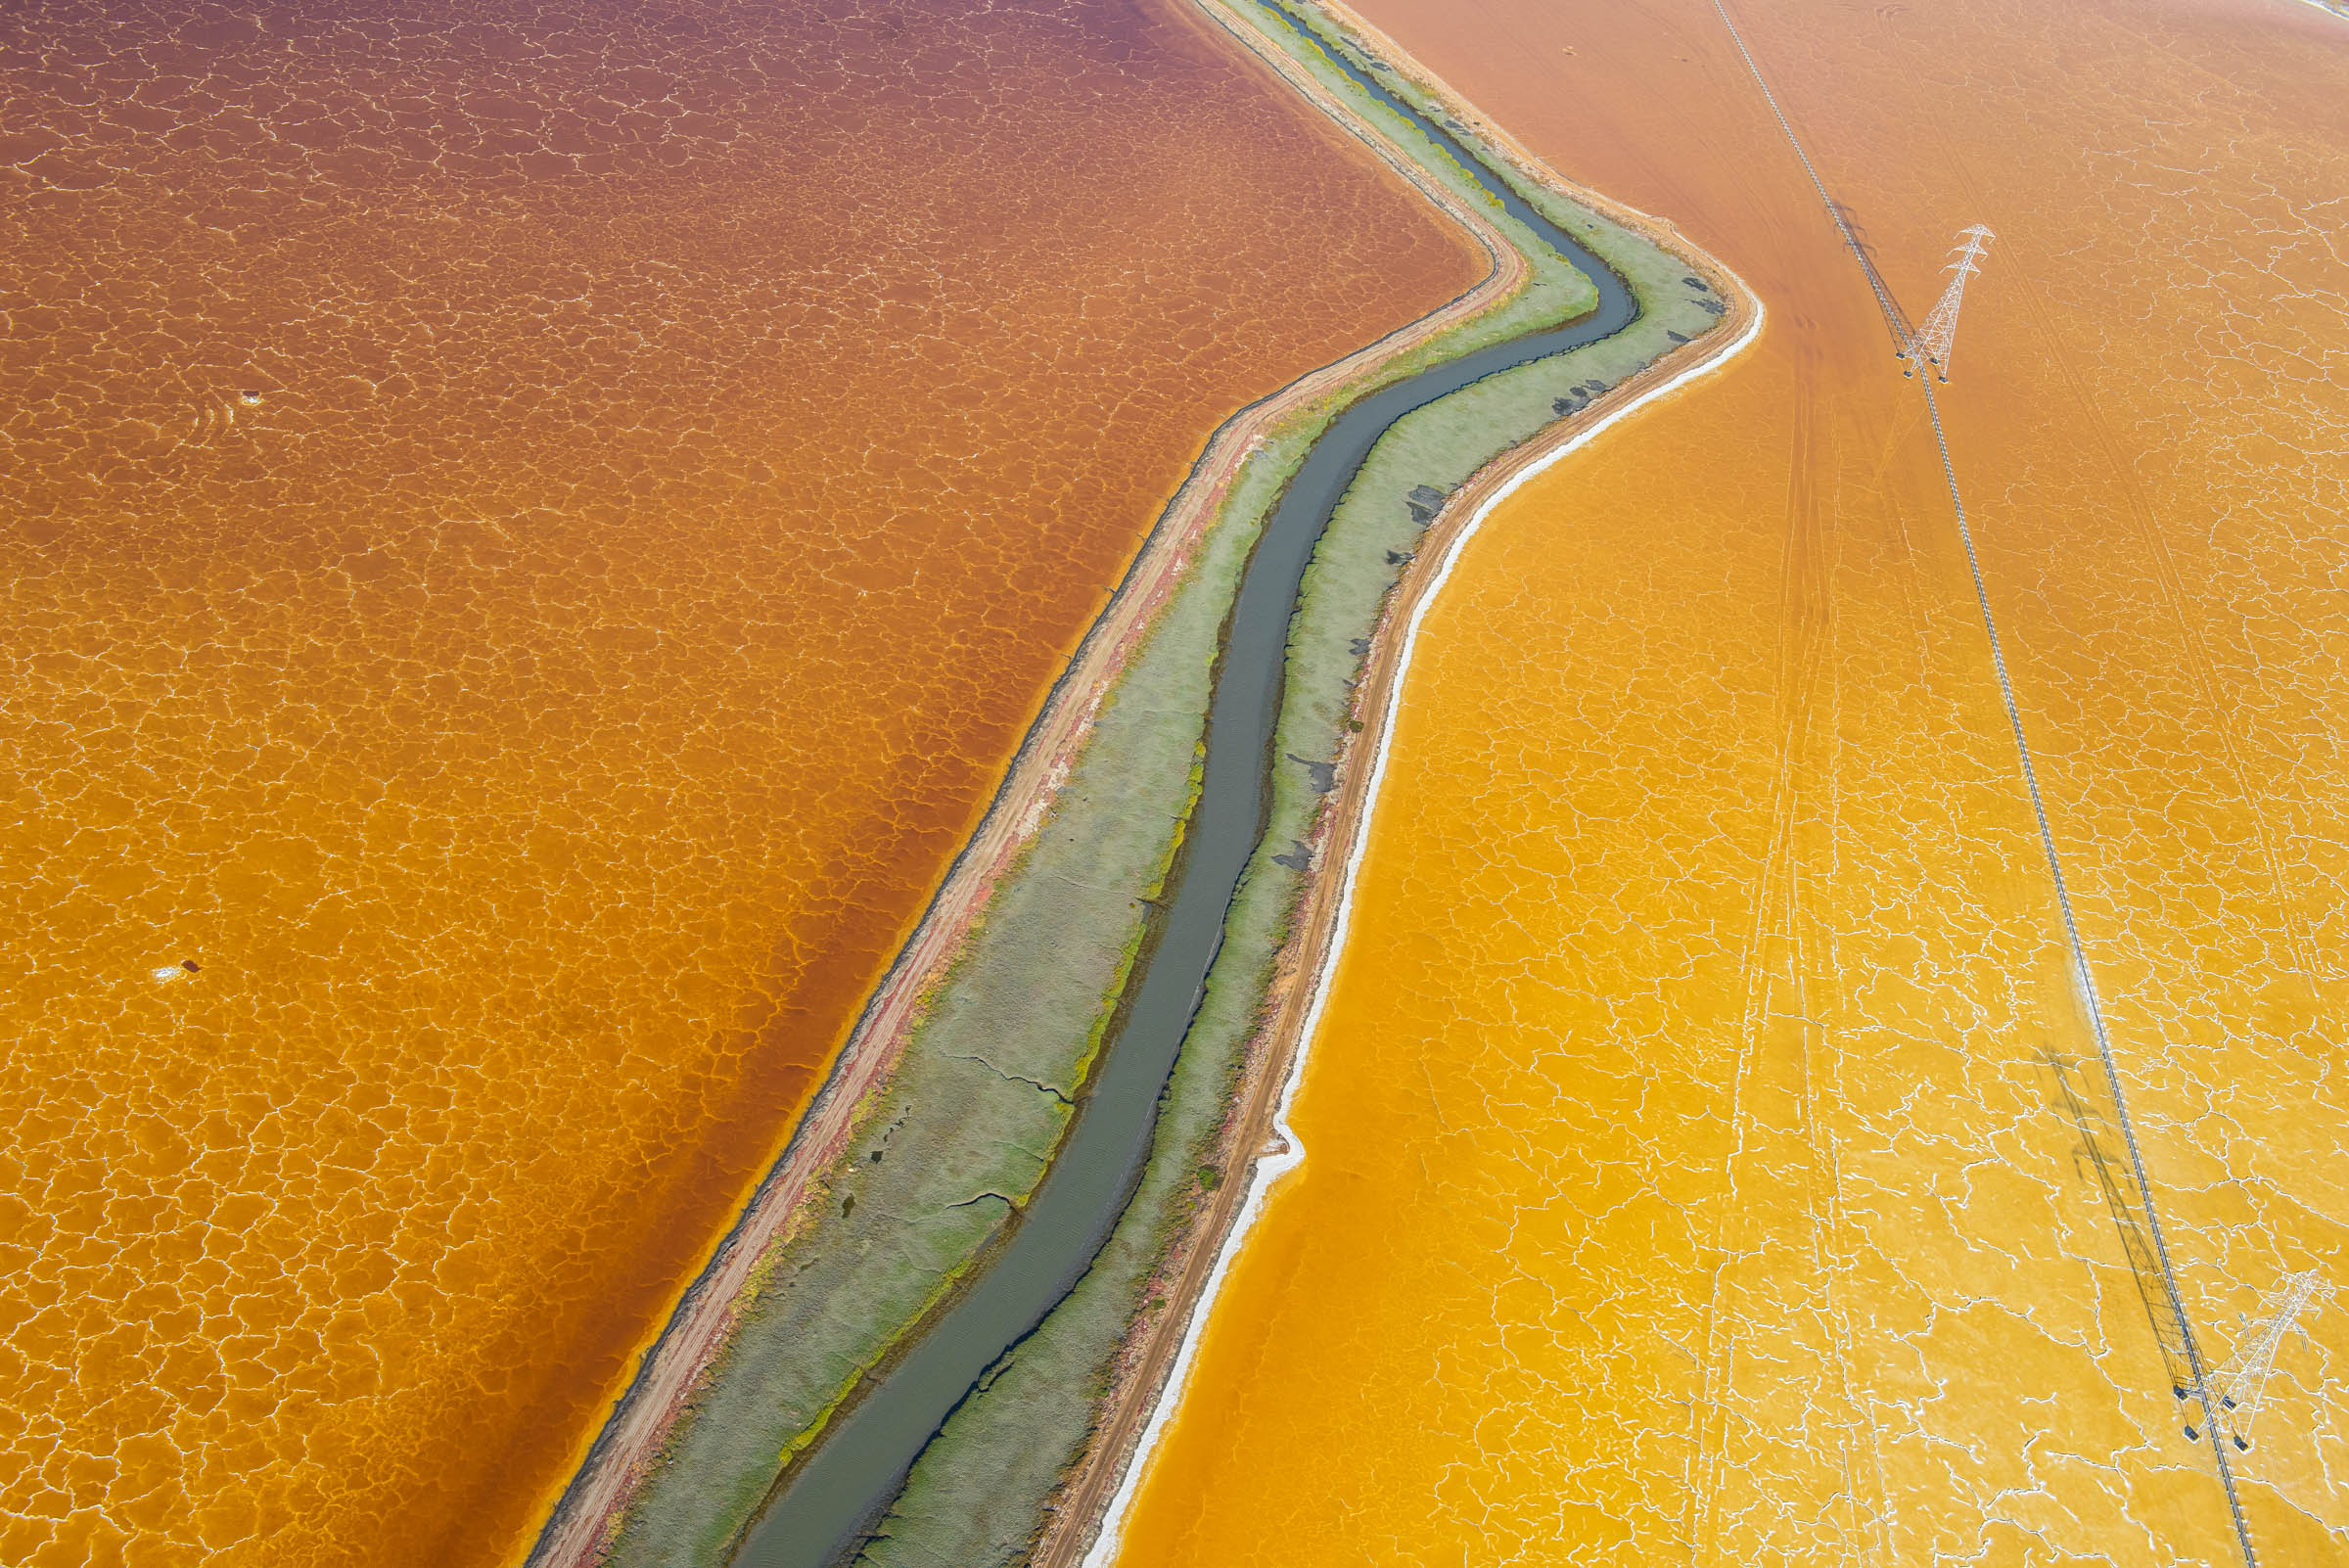 San Francisco Bay salt ponds.